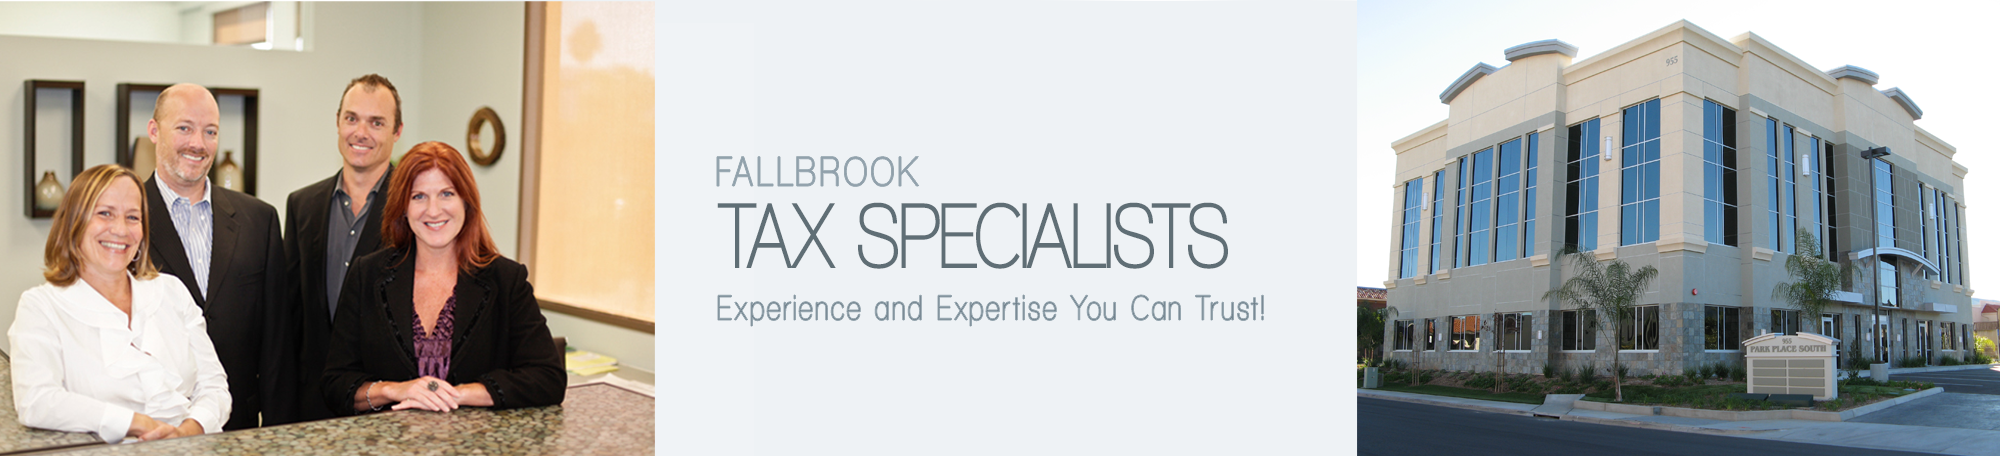 fallbrook-tax-specialists